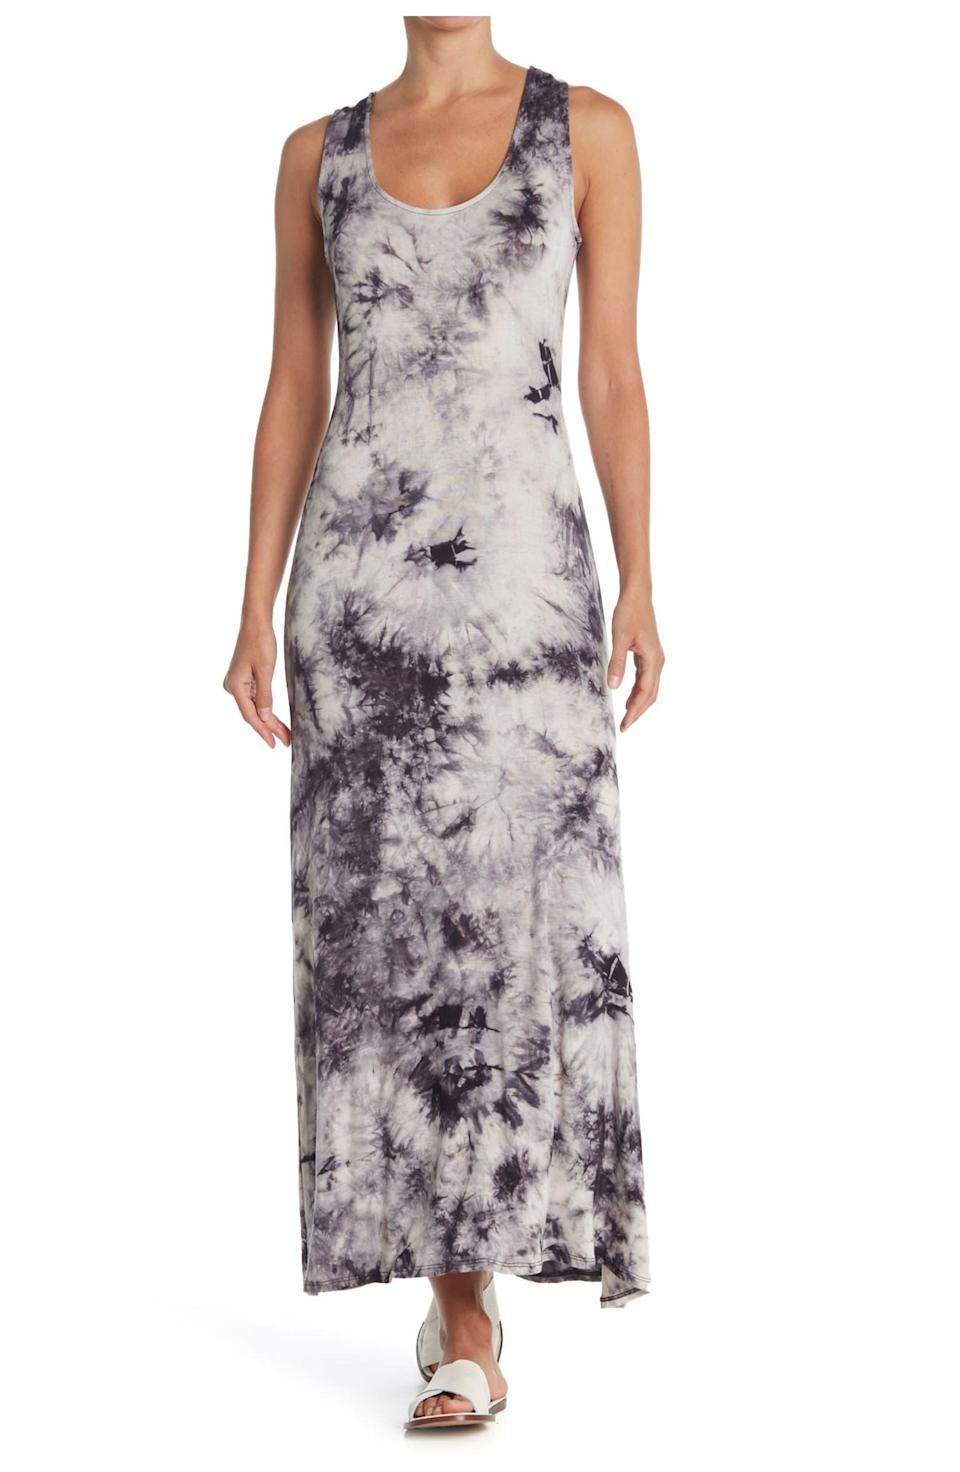 """<h2>West Kei Racerback Sleeveless Maxi Dress</h2><br>If you're not ready kick your <a href=""""https://www.refinery29.com/en-us/tie-dye-loungewear"""" rel=""""nofollow noopener"""" target=""""_blank"""" data-ylk=""""slk:2020 tie-dye loungewear habit"""" class=""""link rapid-noclick-resp"""">2020 tie-dye loungewear habit</a>, here's how you can transition it to summer 2021. It's cute, it's casual, and the way reviewers rave about the comfort of its soft fabric, it's fair to say it's the next best thing to your beloved tie-dye pajamas. <br><br><strong>The Hype:</strong> 4.3 out of 5 stars; 21 reviews on <a href=""""https://www.nordstromrack.com/s/west-kei-tie-dye-racerback-sleeveless-maxi-dress/6067432"""" rel=""""nofollow noopener"""" target=""""_blank"""" data-ylk=""""slk:NordstromRack.com"""" class=""""link rapid-noclick-resp"""">NordstromRack.com</a><br><br><strong>What They're Saying:</strong> """"Super comfy and nice soft fabric, a little bit clingy, but overall flattering to just about any shape body, the fabric is not too this and hangs nicely below the hips. Pattern is nice, and I got the grey, it has some black in it and easy to find almost any footwear to go with it. Washes nicely, I hung dry and got the perfect results. I received many compliments the first time I wore it."""" — Judy J, NordstromRack.com reviewer<br><br><strong>WEST KEI</strong> Tie Dye Racerback Sleeveless Maxi Dress, $, available at <a href=""""https://go.skimresources.com/?id=30283X879131&url=https%3A%2F%2Fwww.nordstromrack.com%2Fs%2Fwest-kei-tie-dye-racerback-sleeveless-maxi-dress%2F6067432"""" rel=""""nofollow noopener"""" target=""""_blank"""" data-ylk=""""slk:Nordstrom Rack"""" class=""""link rapid-noclick-resp"""">Nordstrom Rack</a>"""